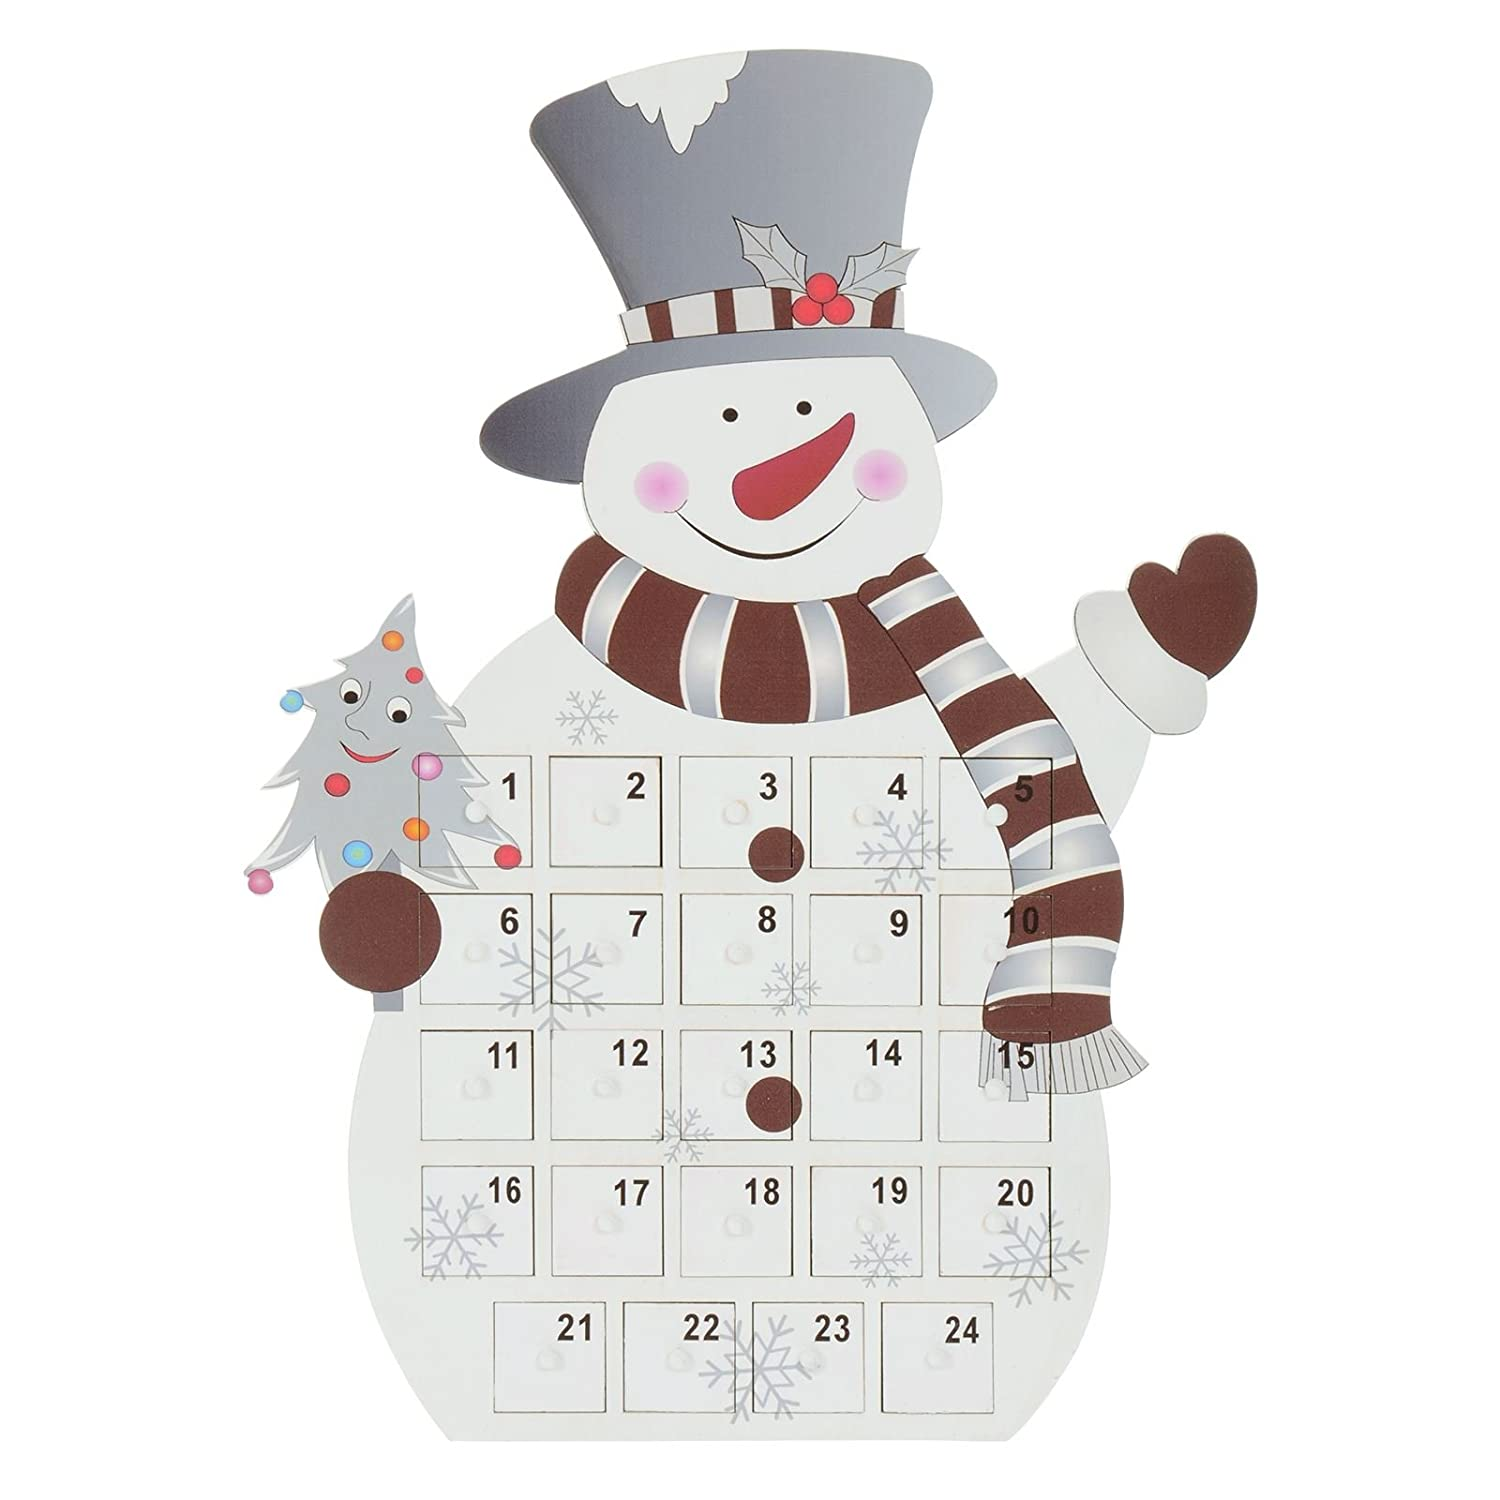 Mr Crimbo Standing Snowman Christmas Wooden Advent Calendar 24 Removable Trays Drawers Boxes Add Your Own Gift Sweet Treat Child XS-Stock.com Ltd